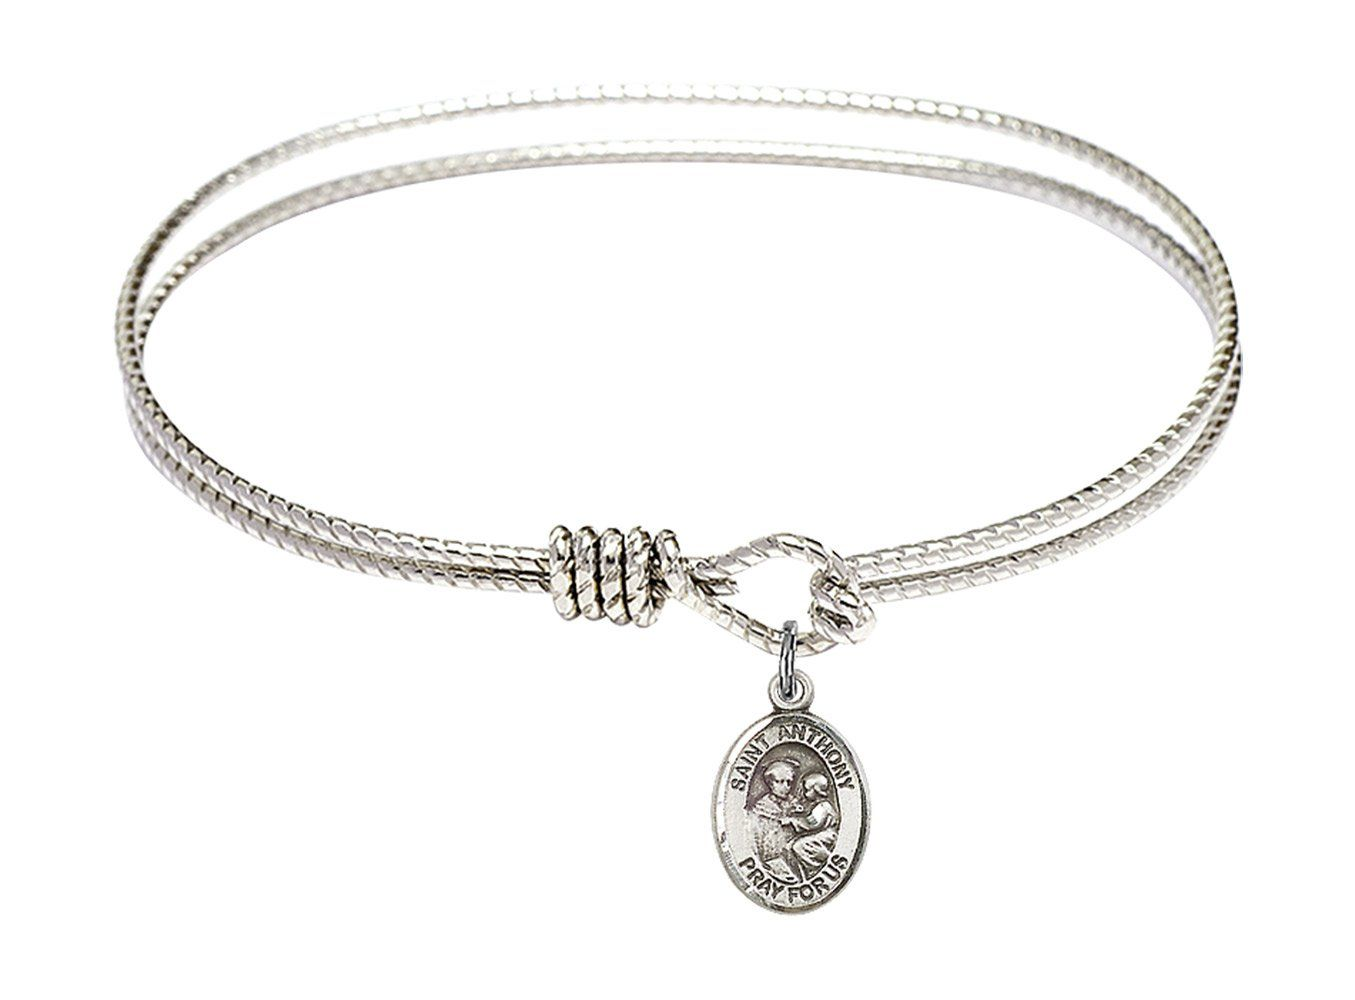 Cross Charm Charm On A 7 1//2 Inch Round Double Loop Bangle Bracelet